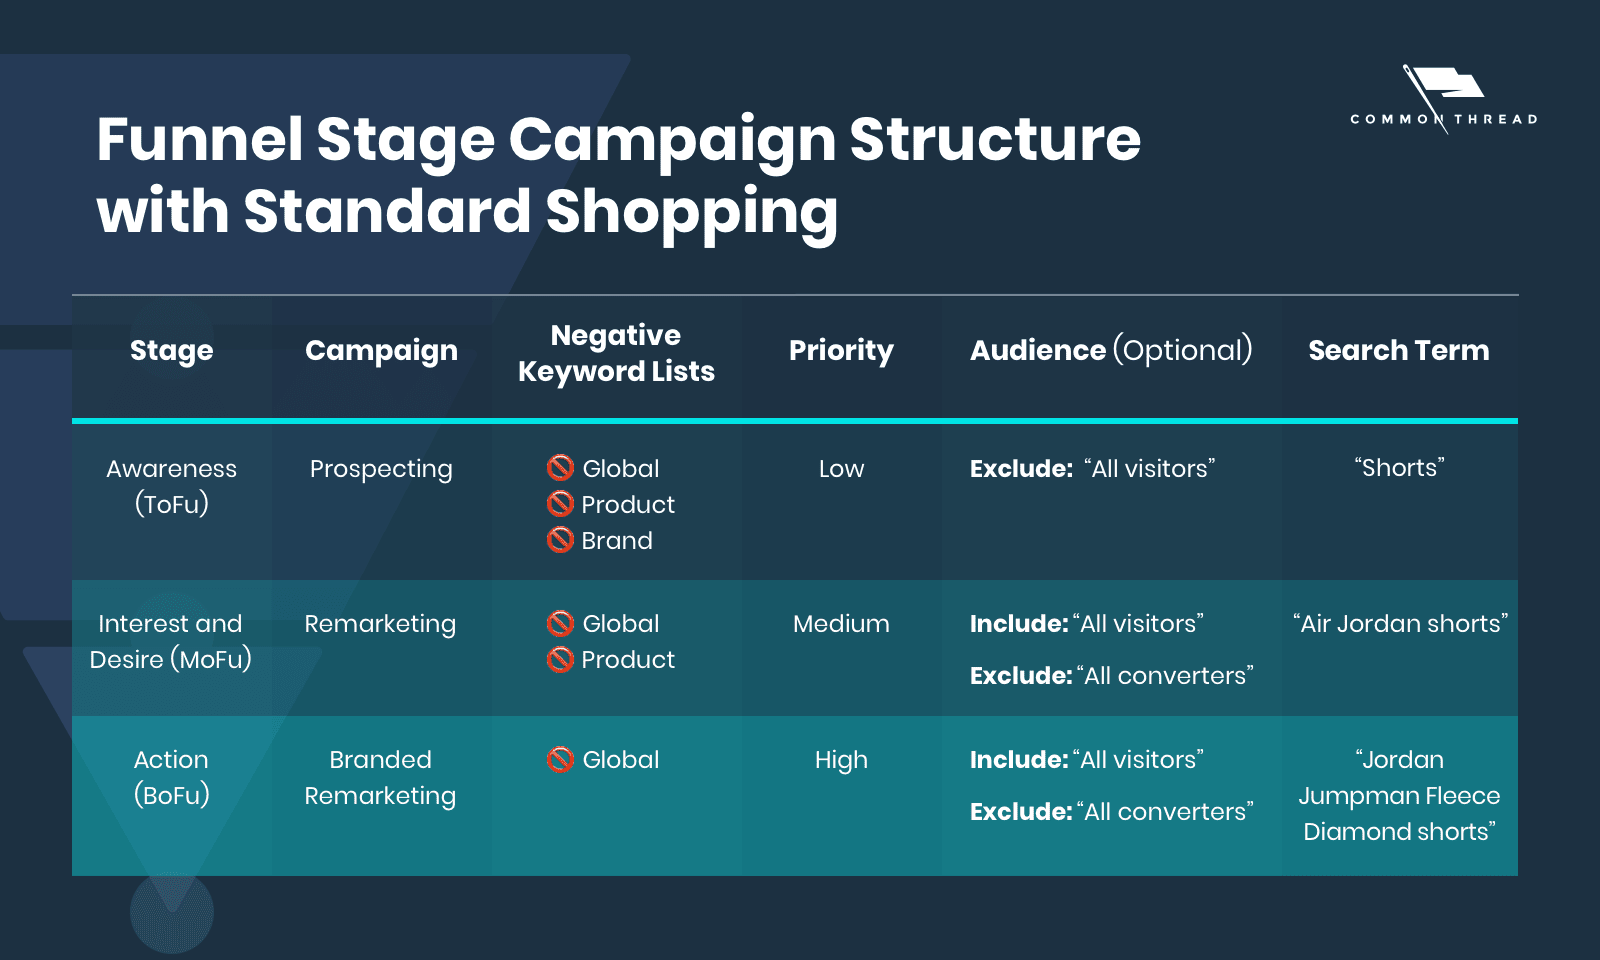 Funnel Stage Campaign Structure with Standard Shopping